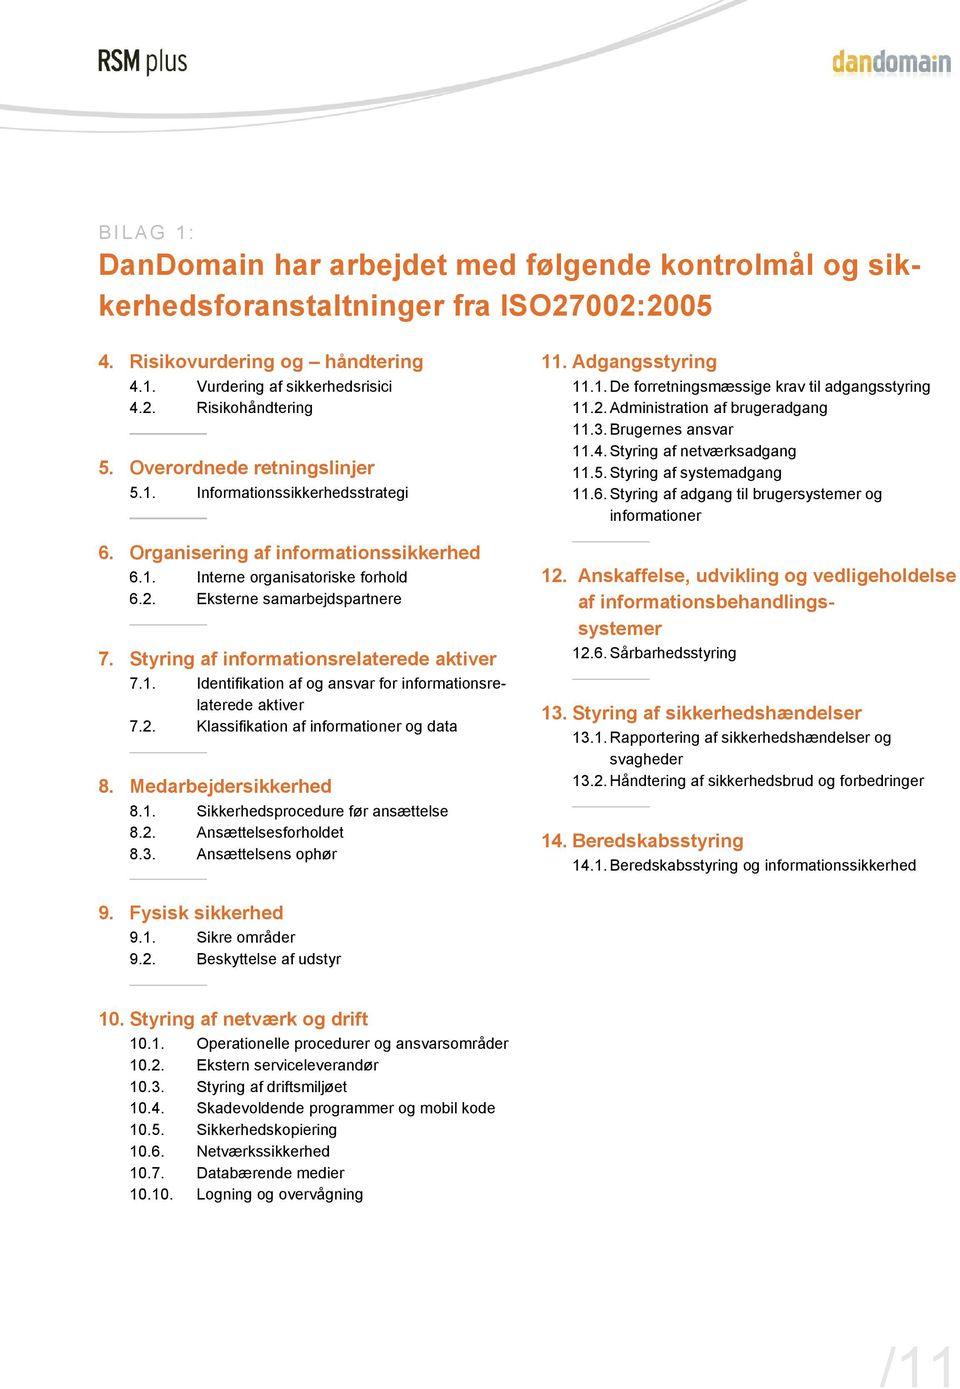 Styring af informationsrelaterede aktiver 7.1. Identifikation af og ansvar for informationsrelaterede aktiver 7.2. Klassifikation af informationer og data 8. Medarbejdersikkerhed 8.1. Sikkerhedsprocedure før ansættelse 8.